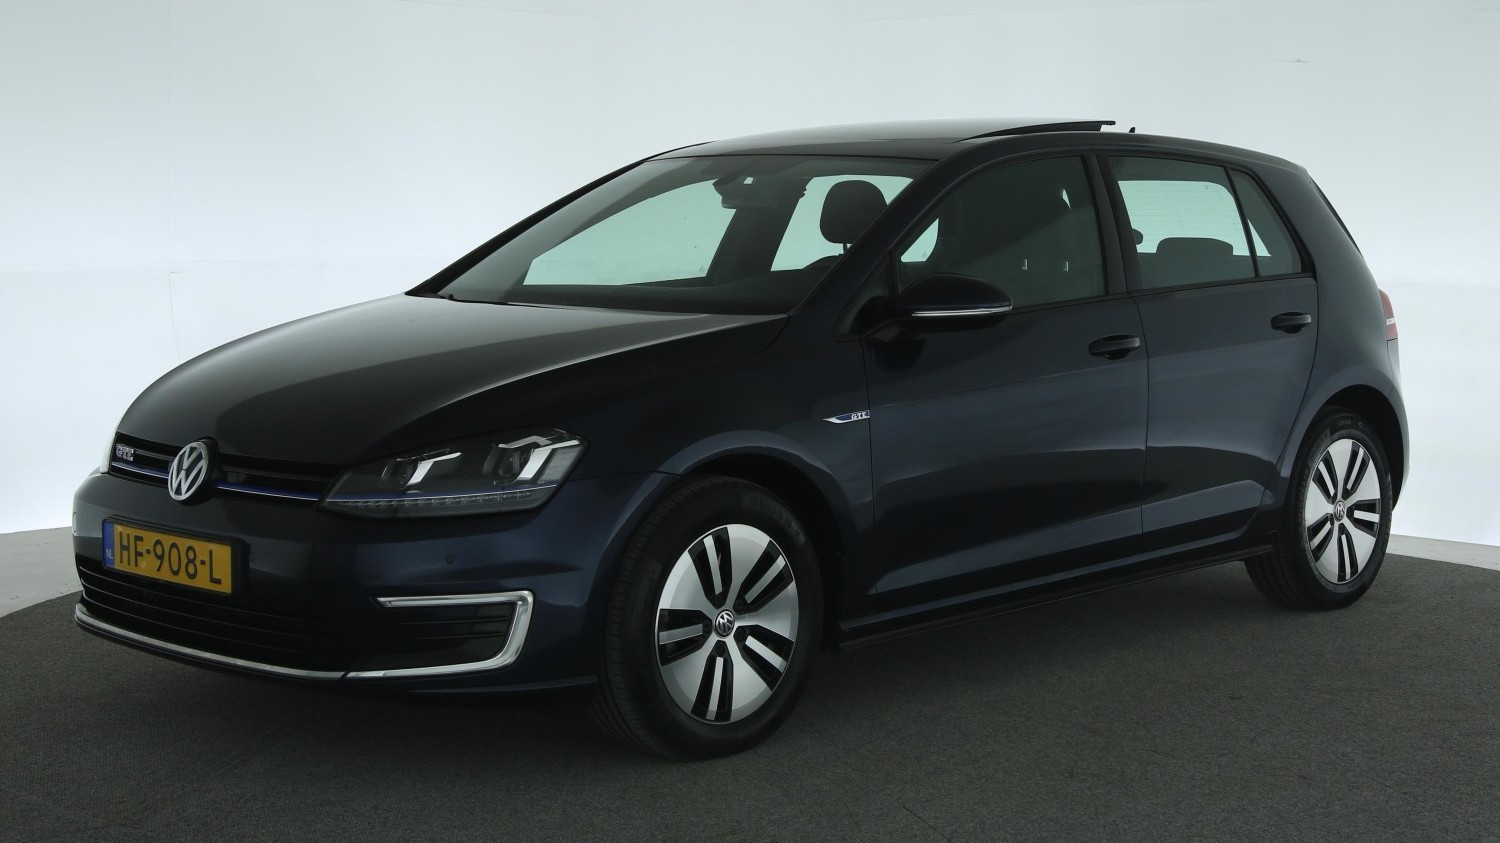 Volkswagen Golf Hatchback 2015 HF-908-L 1